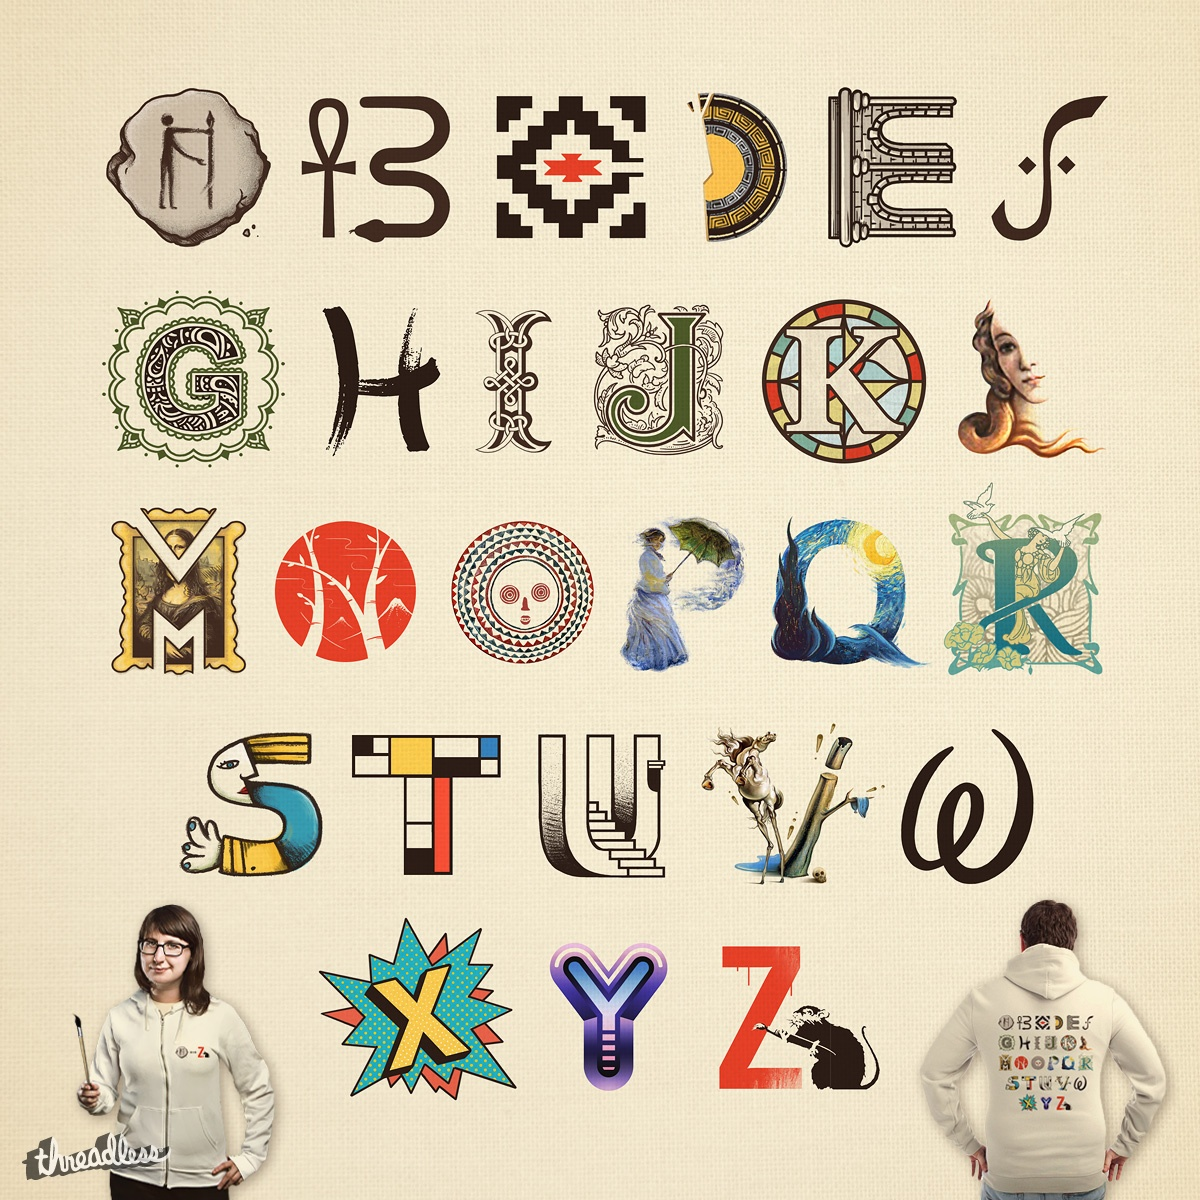 A-Z Art History by FRICKINAWESOME and buko on Threadless